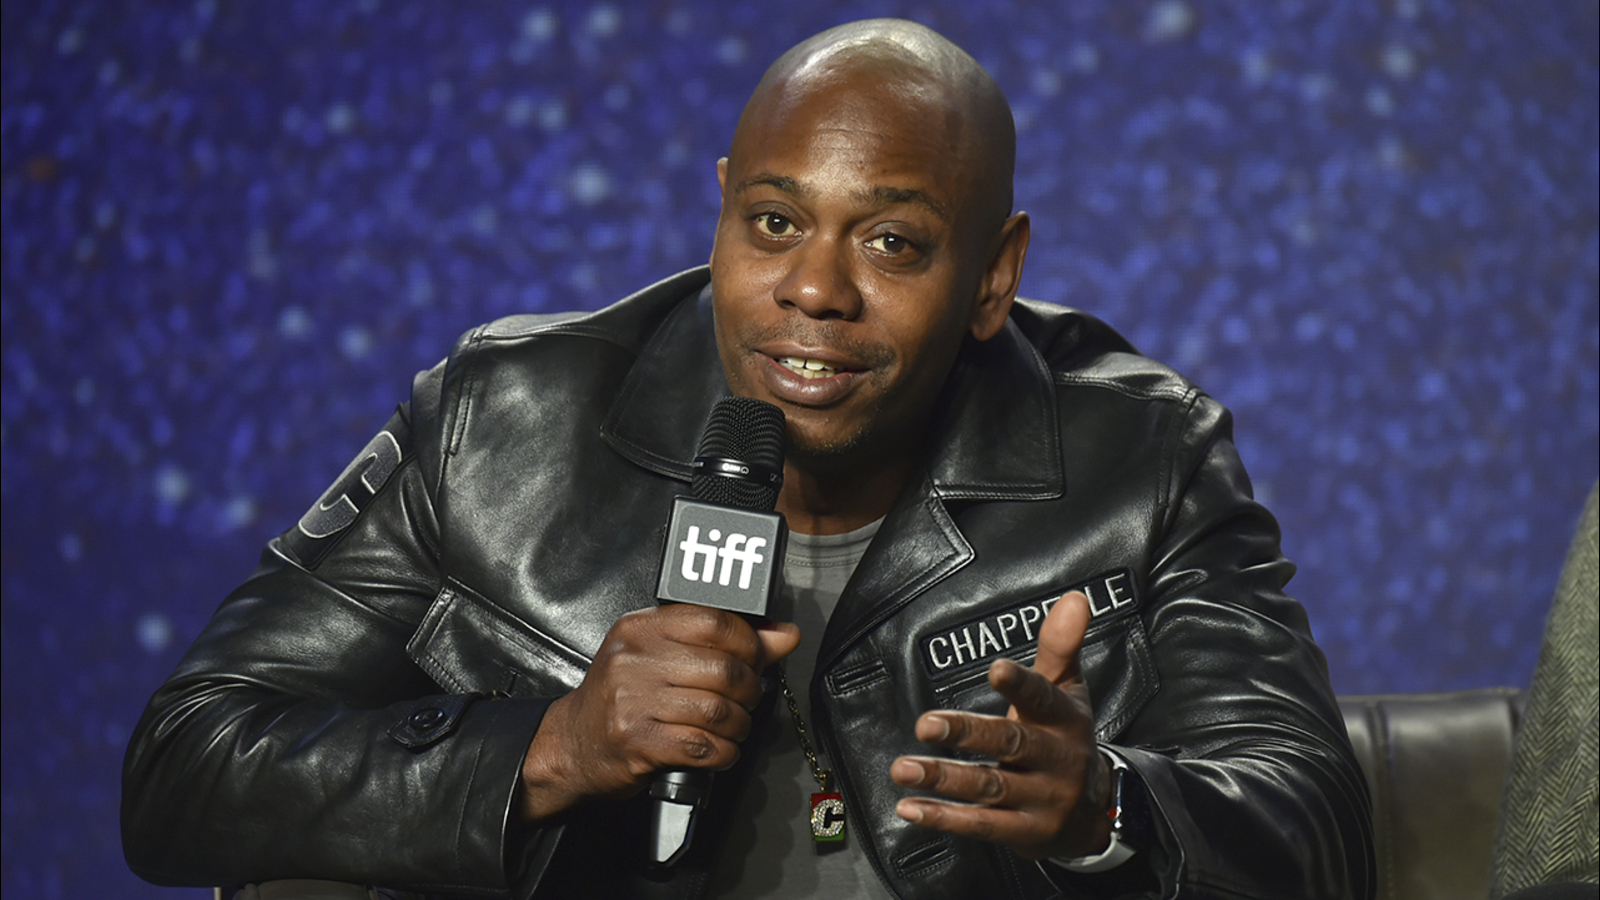 LIVE: Comedian Dave Chappelle to make announcement about Punchline SF comedy club